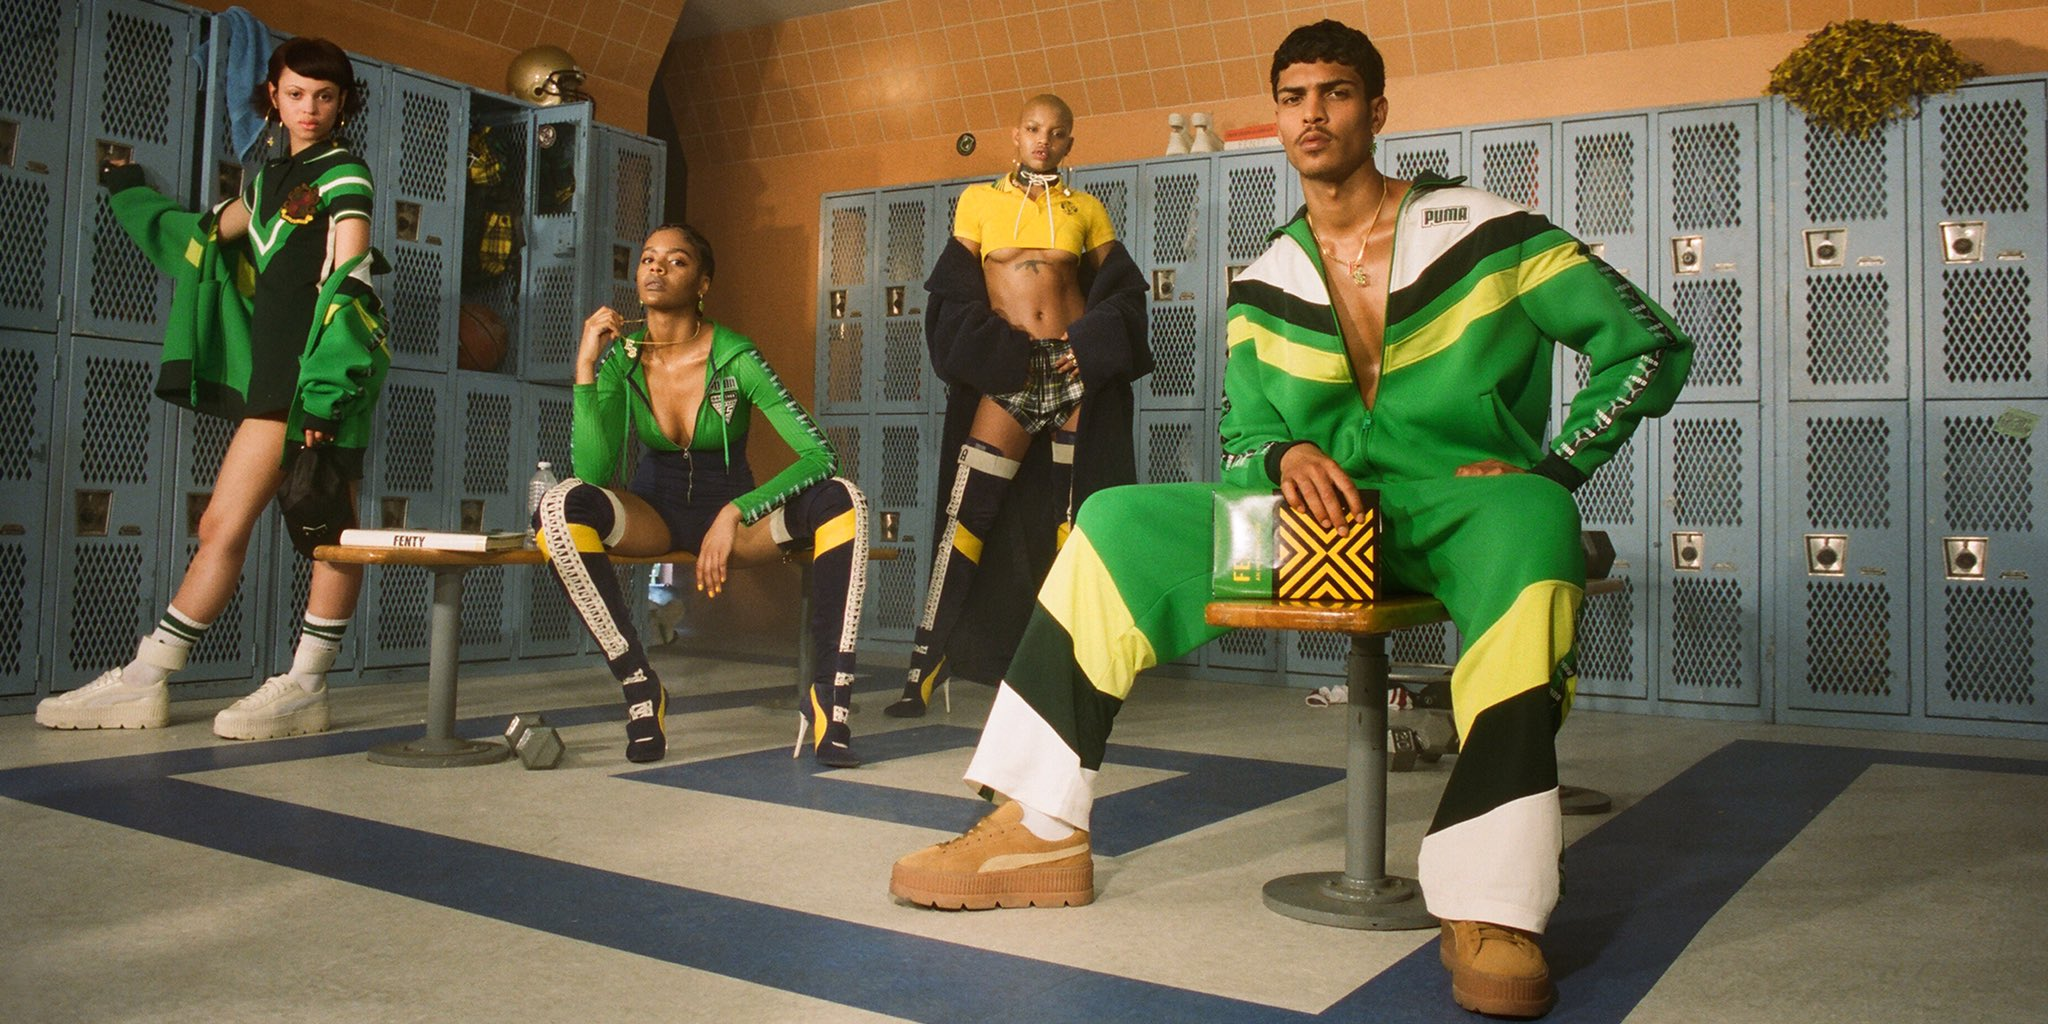 Get ready for class... The #FENTYXPUMA AW17 collection drops SEPT. 28 ������ https://t.co/b5TGhx5kL8